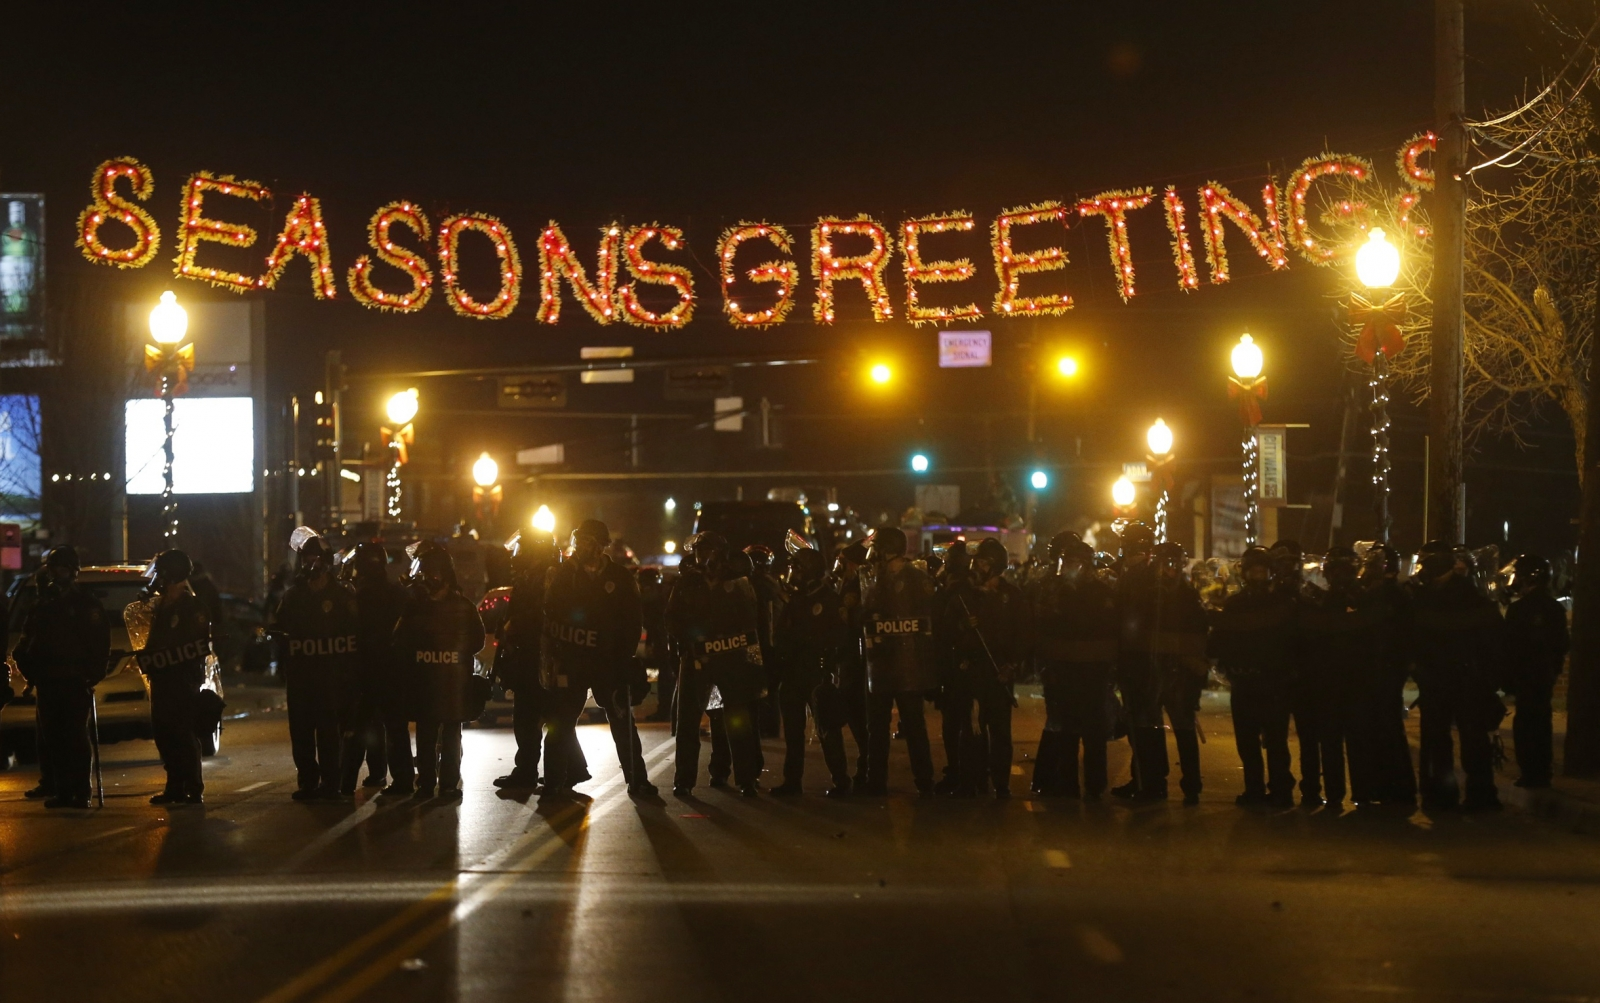 Ferguson Protestors Gather Following Grand Jury Decision Not to Indict Darren Wilson